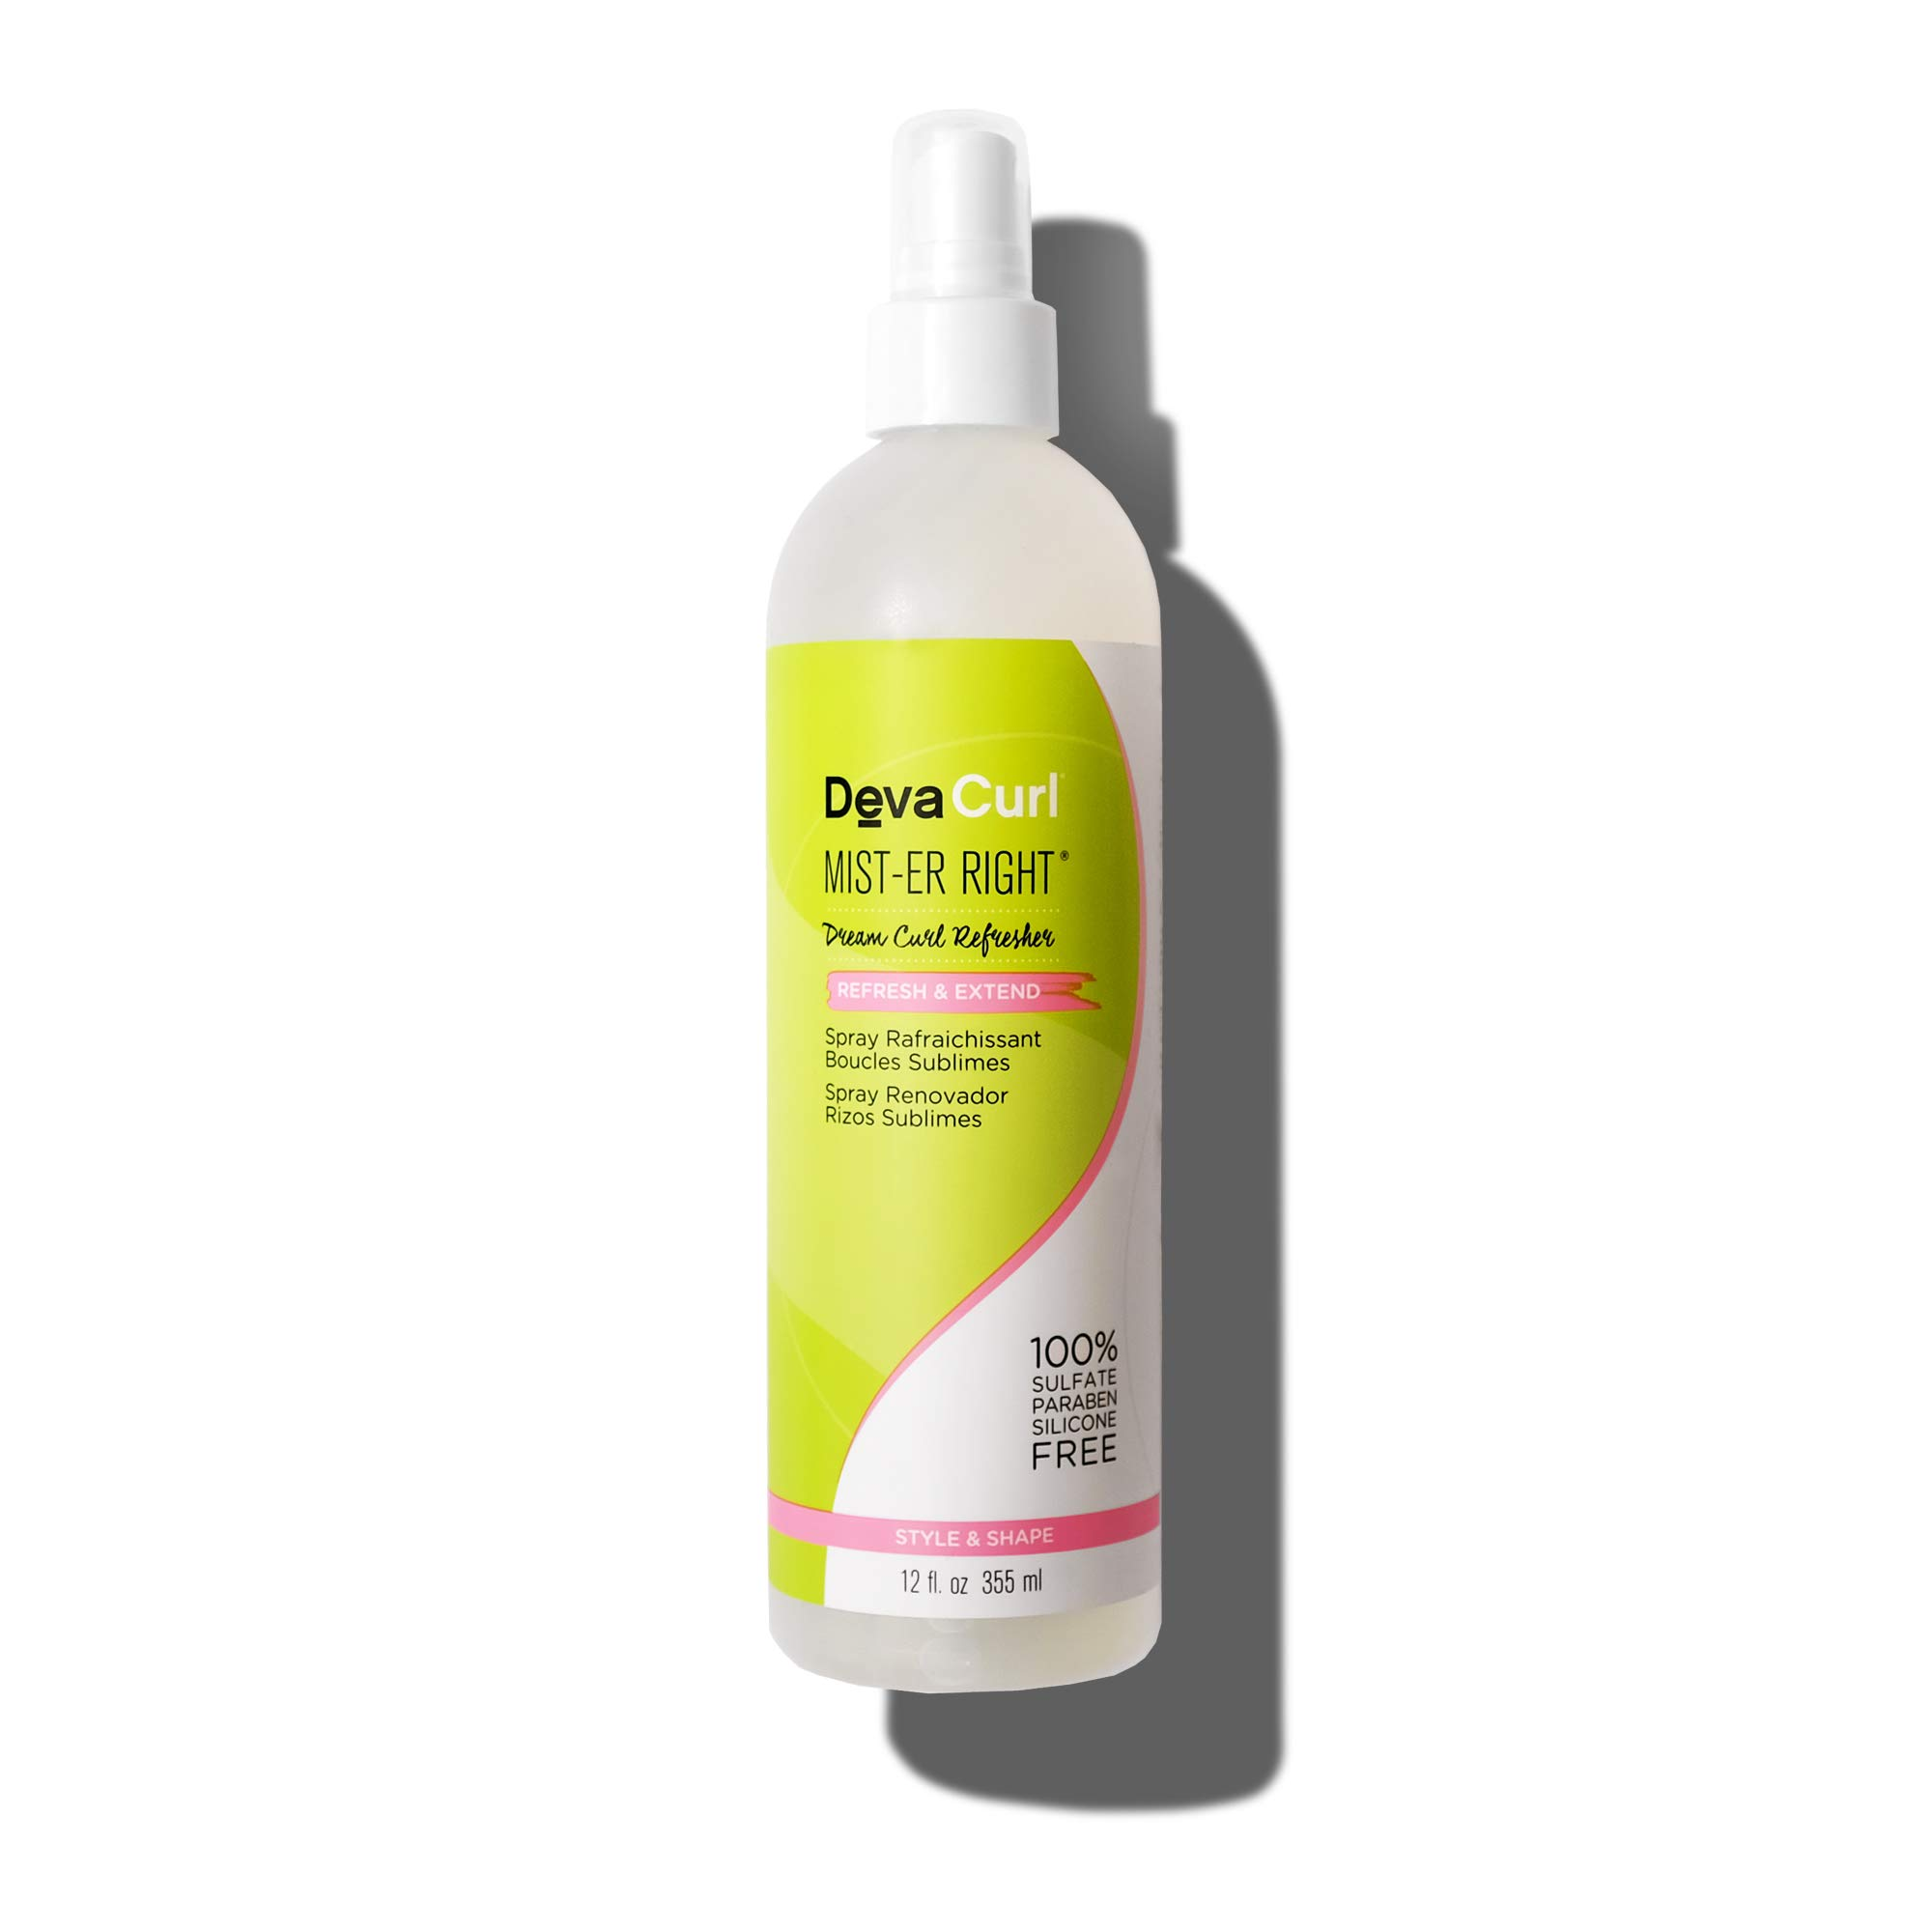 DevaCurl Mist-er Right Dream Curl Refresher; 12oz by DevaCurl